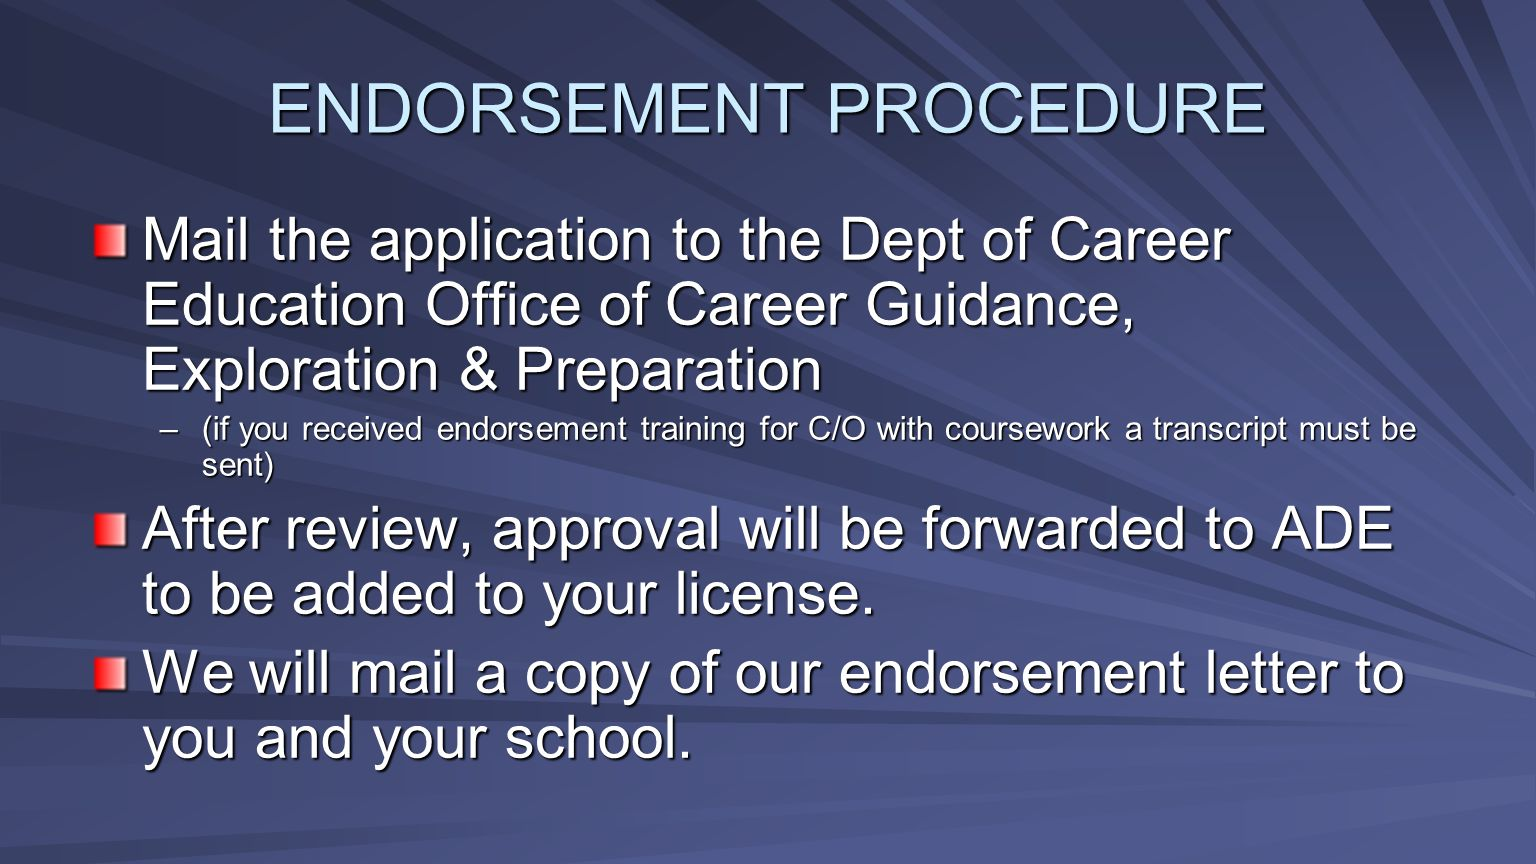 Mail the application to the Dept of Career Education Office of Career Guidance, Exploration & Preparation –(if you received endorsement training for C